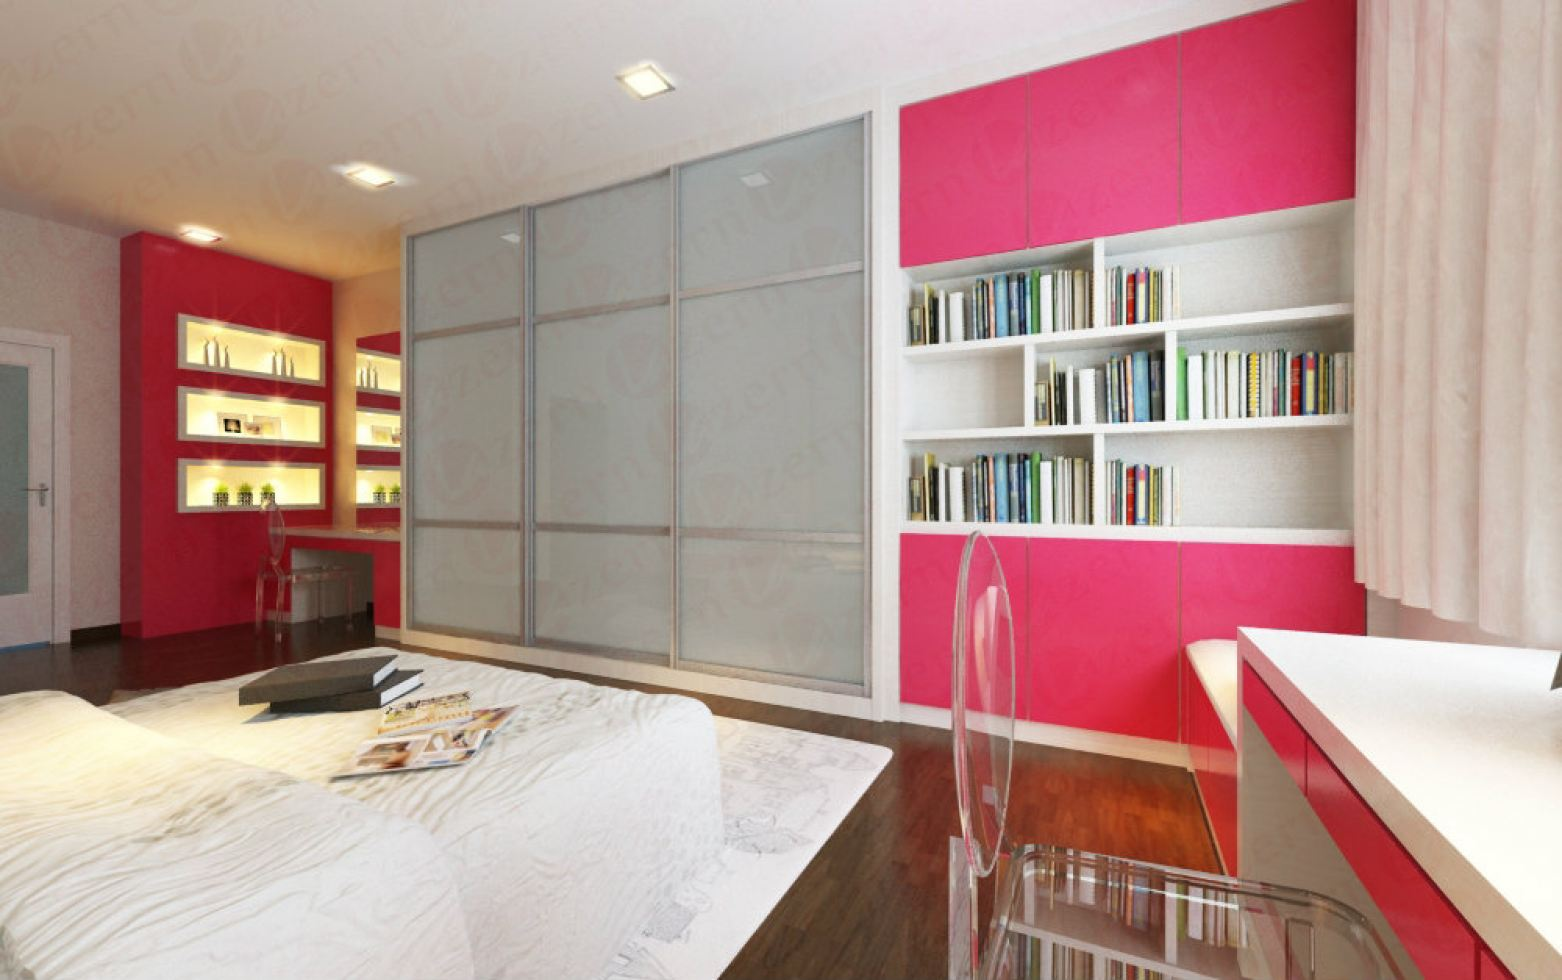 Pink and White bedrooms seem like a clever combination of the opposites.